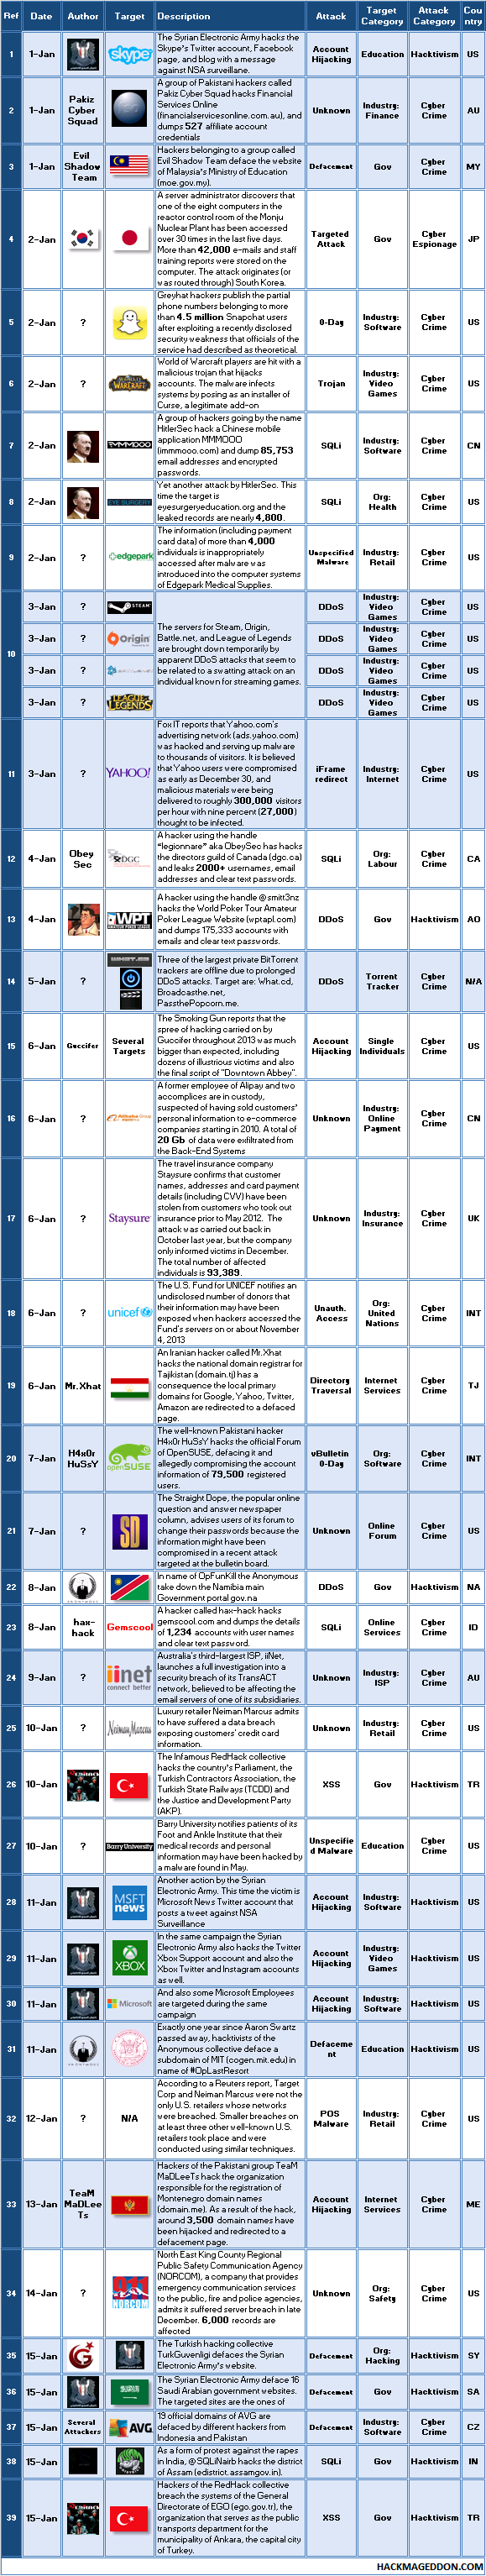 1-15 Jan 2014 Cyber Attacks Timeline